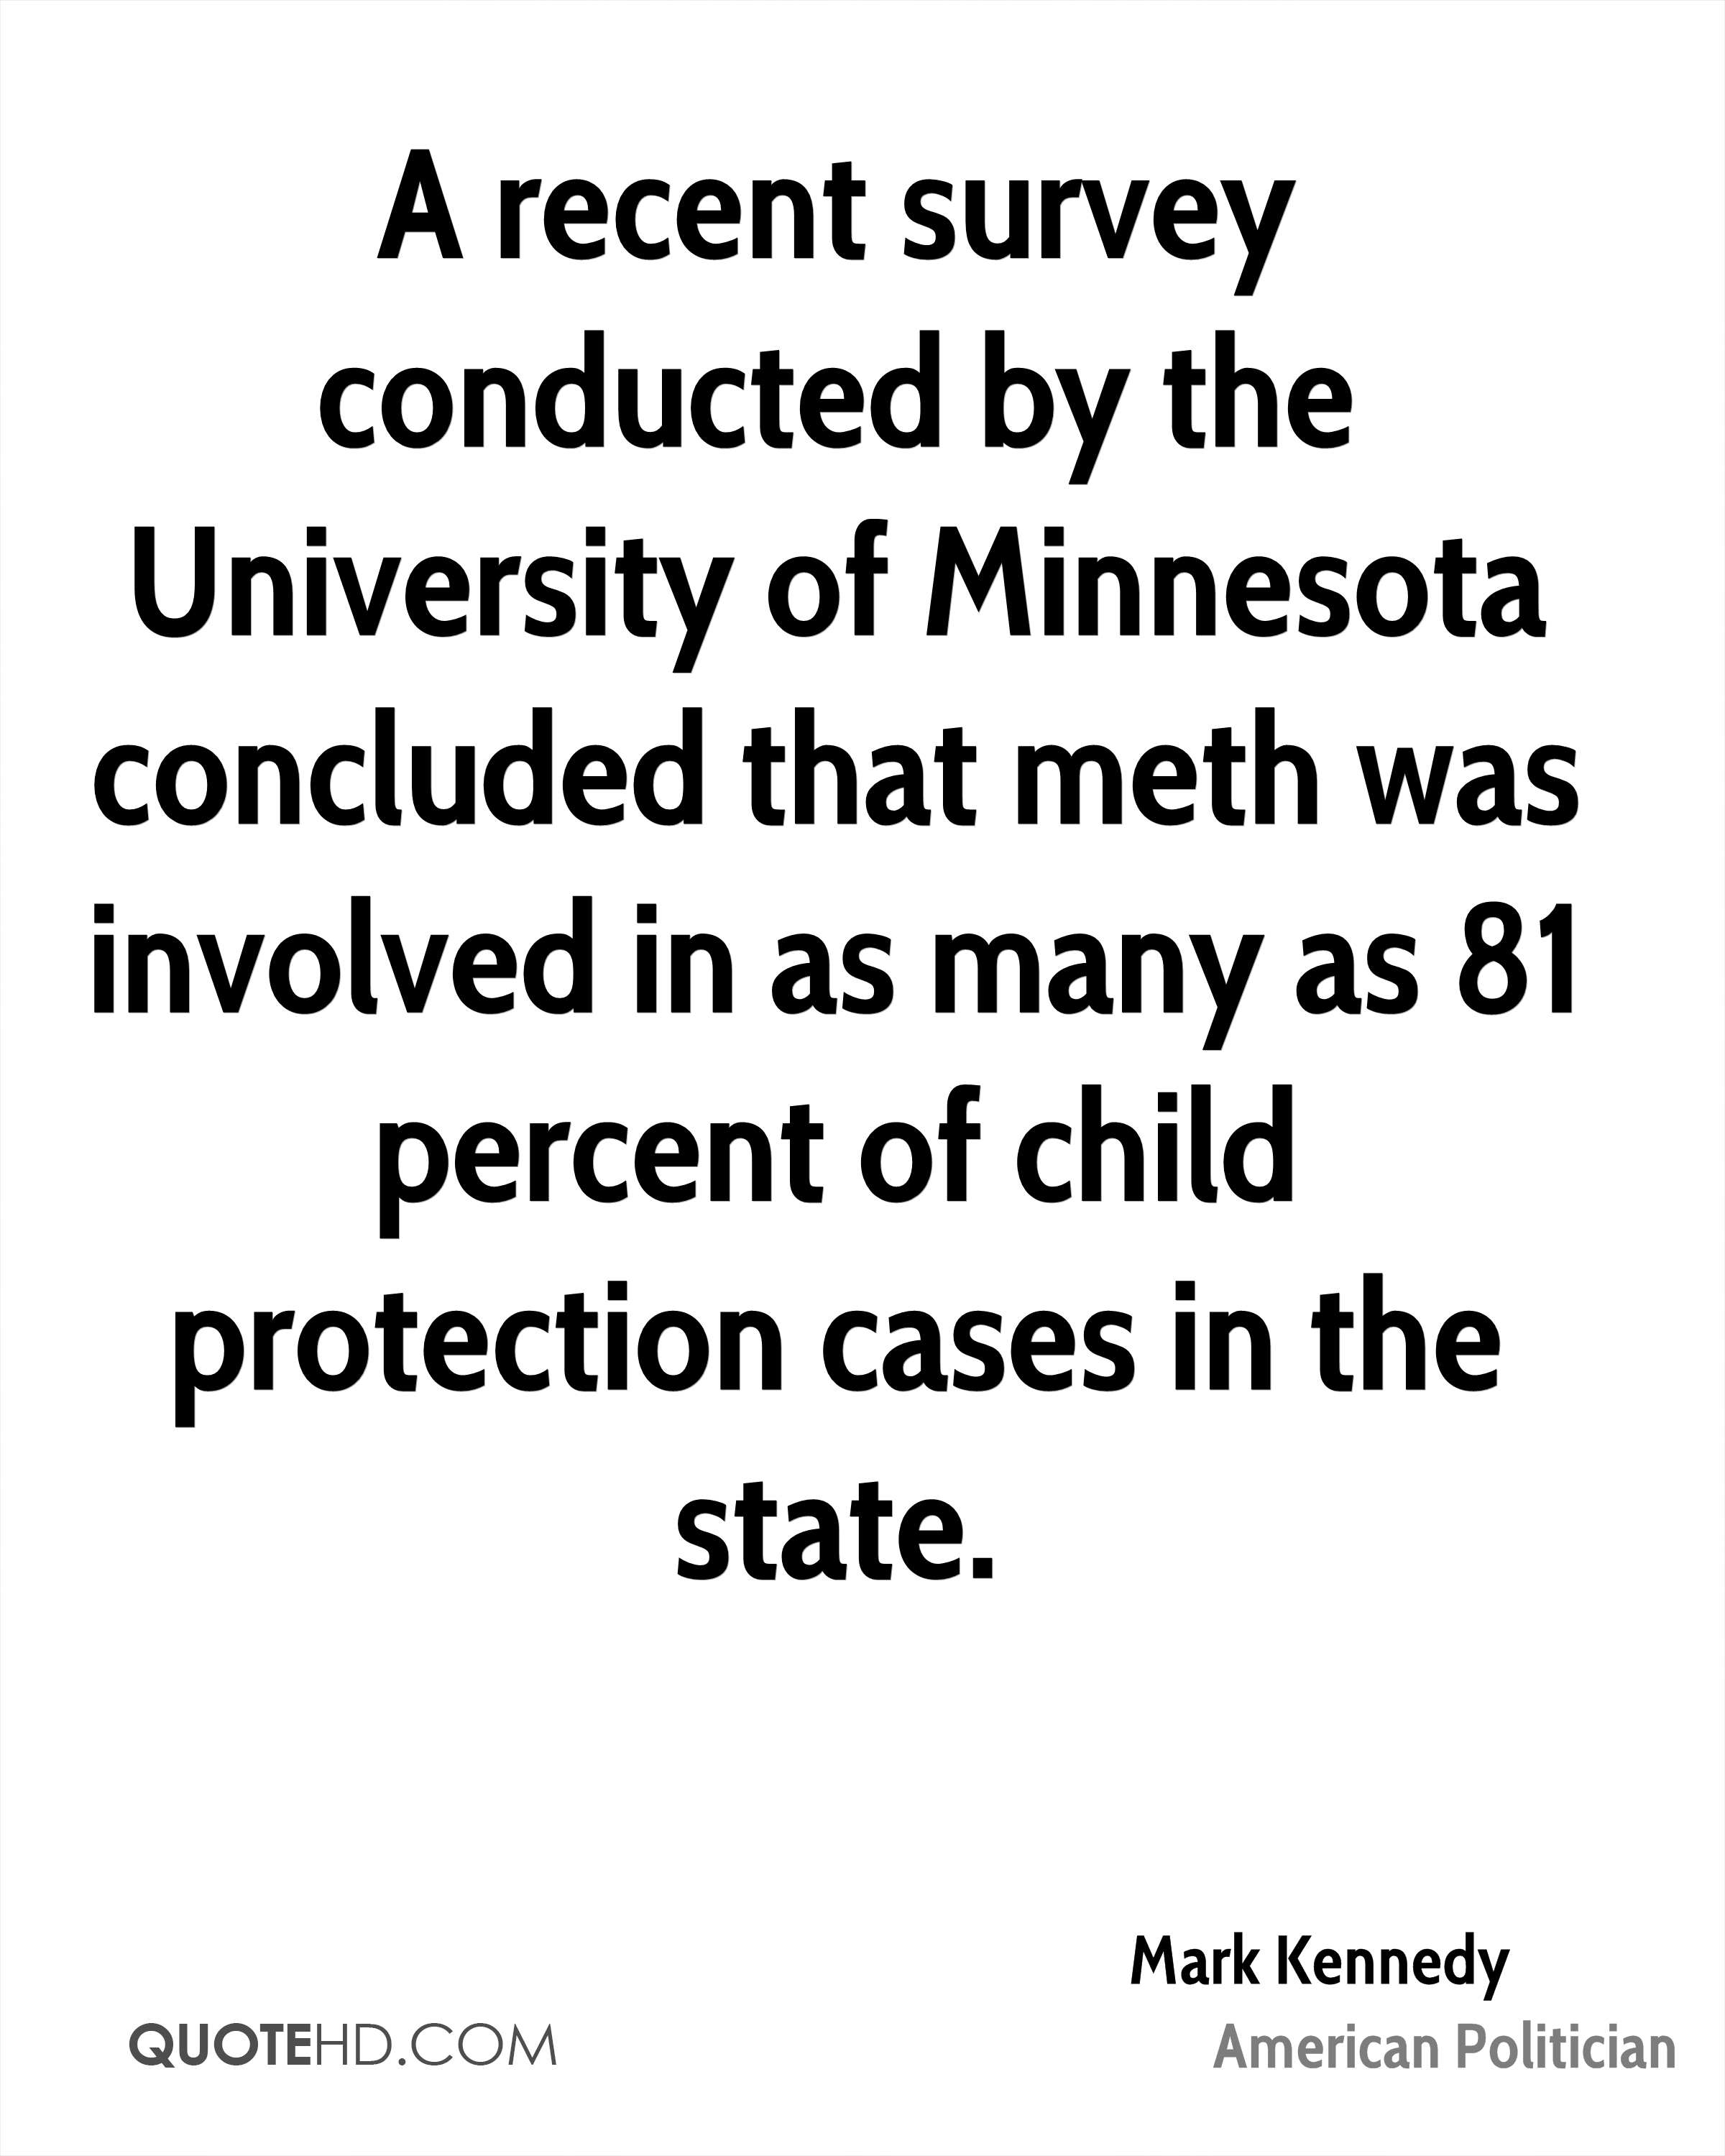 A recent survey conducted by the University of Minnesota concluded that meth was involved in as many as 81 percent of child protection cases in the state.